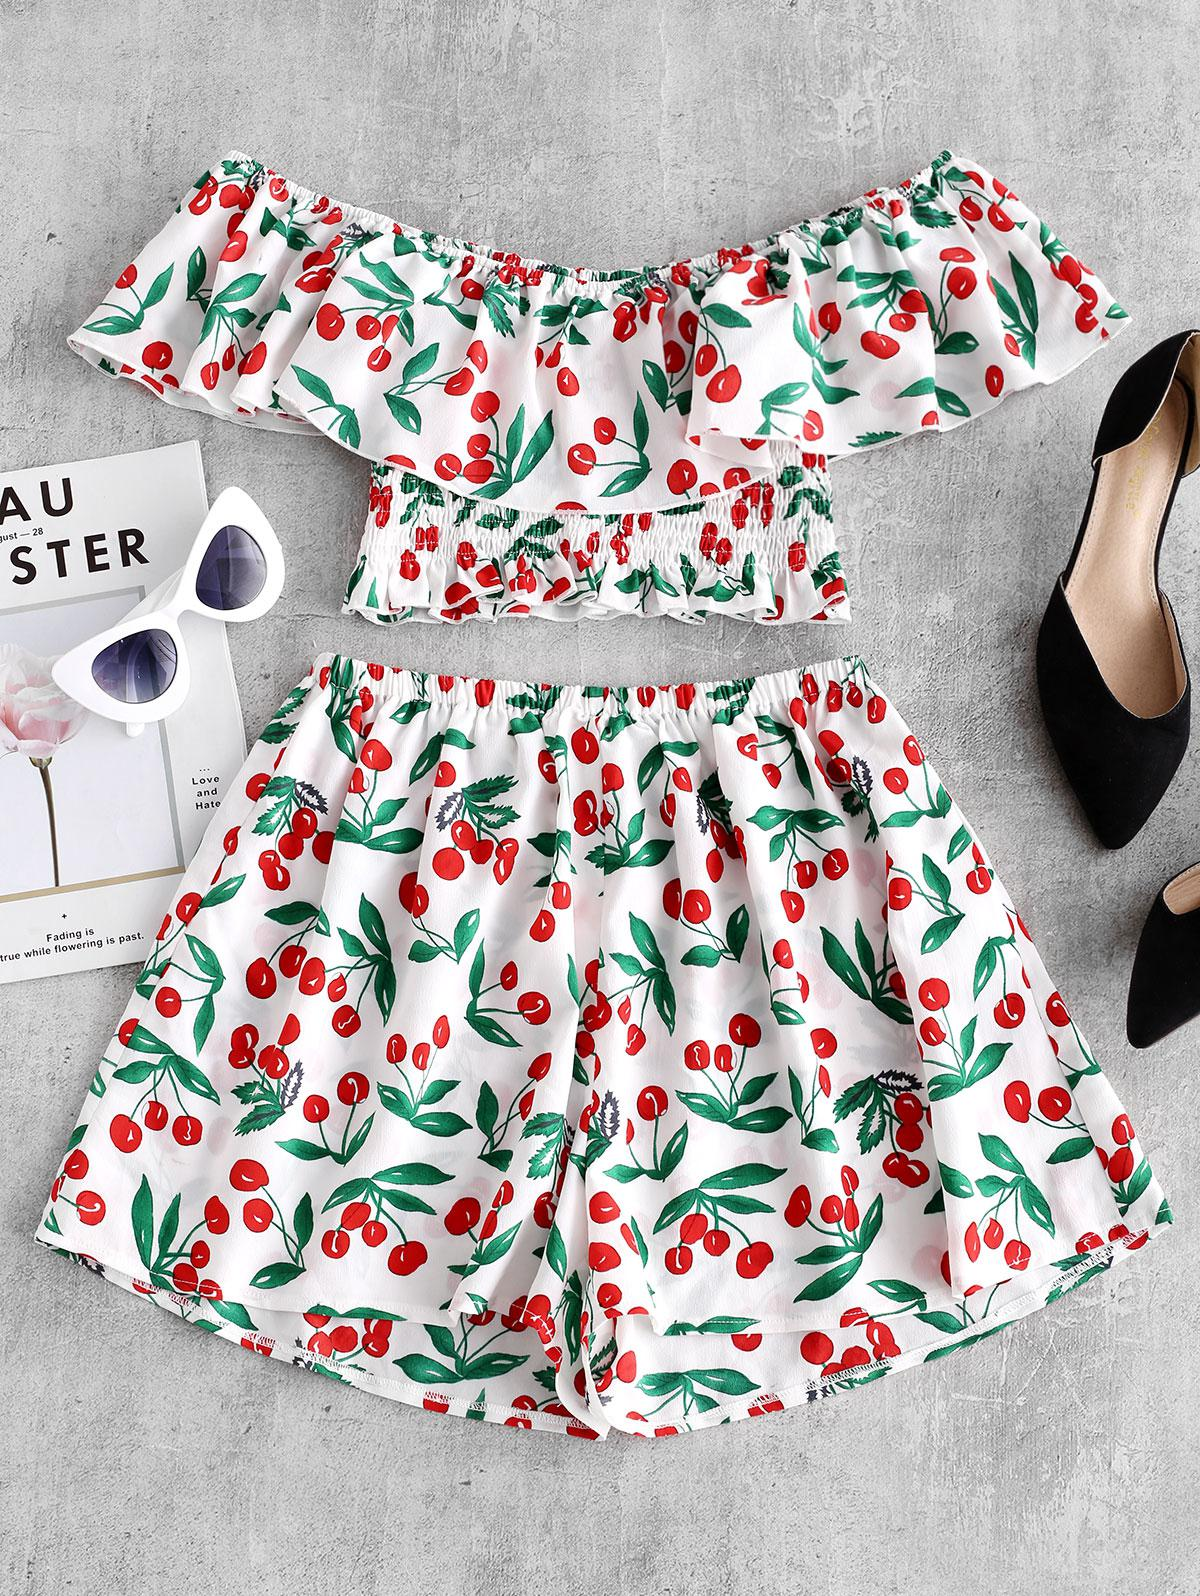 ZAFUL Cherry Print Flounce Smocked Two Piece Set, White